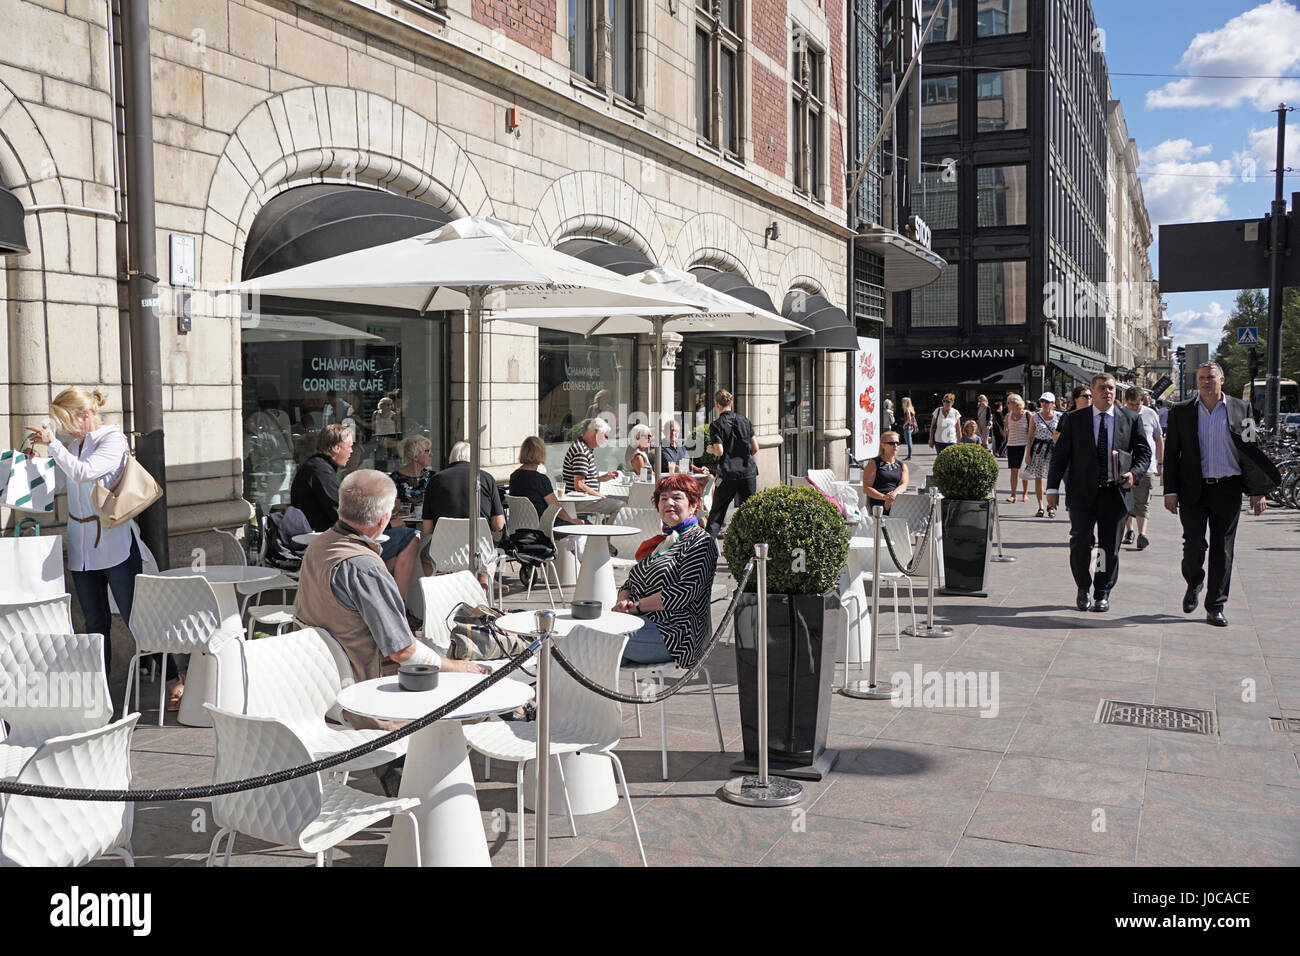 Downtown Helsinki outdoor cafe at Stockman Department Store. - Stock Image